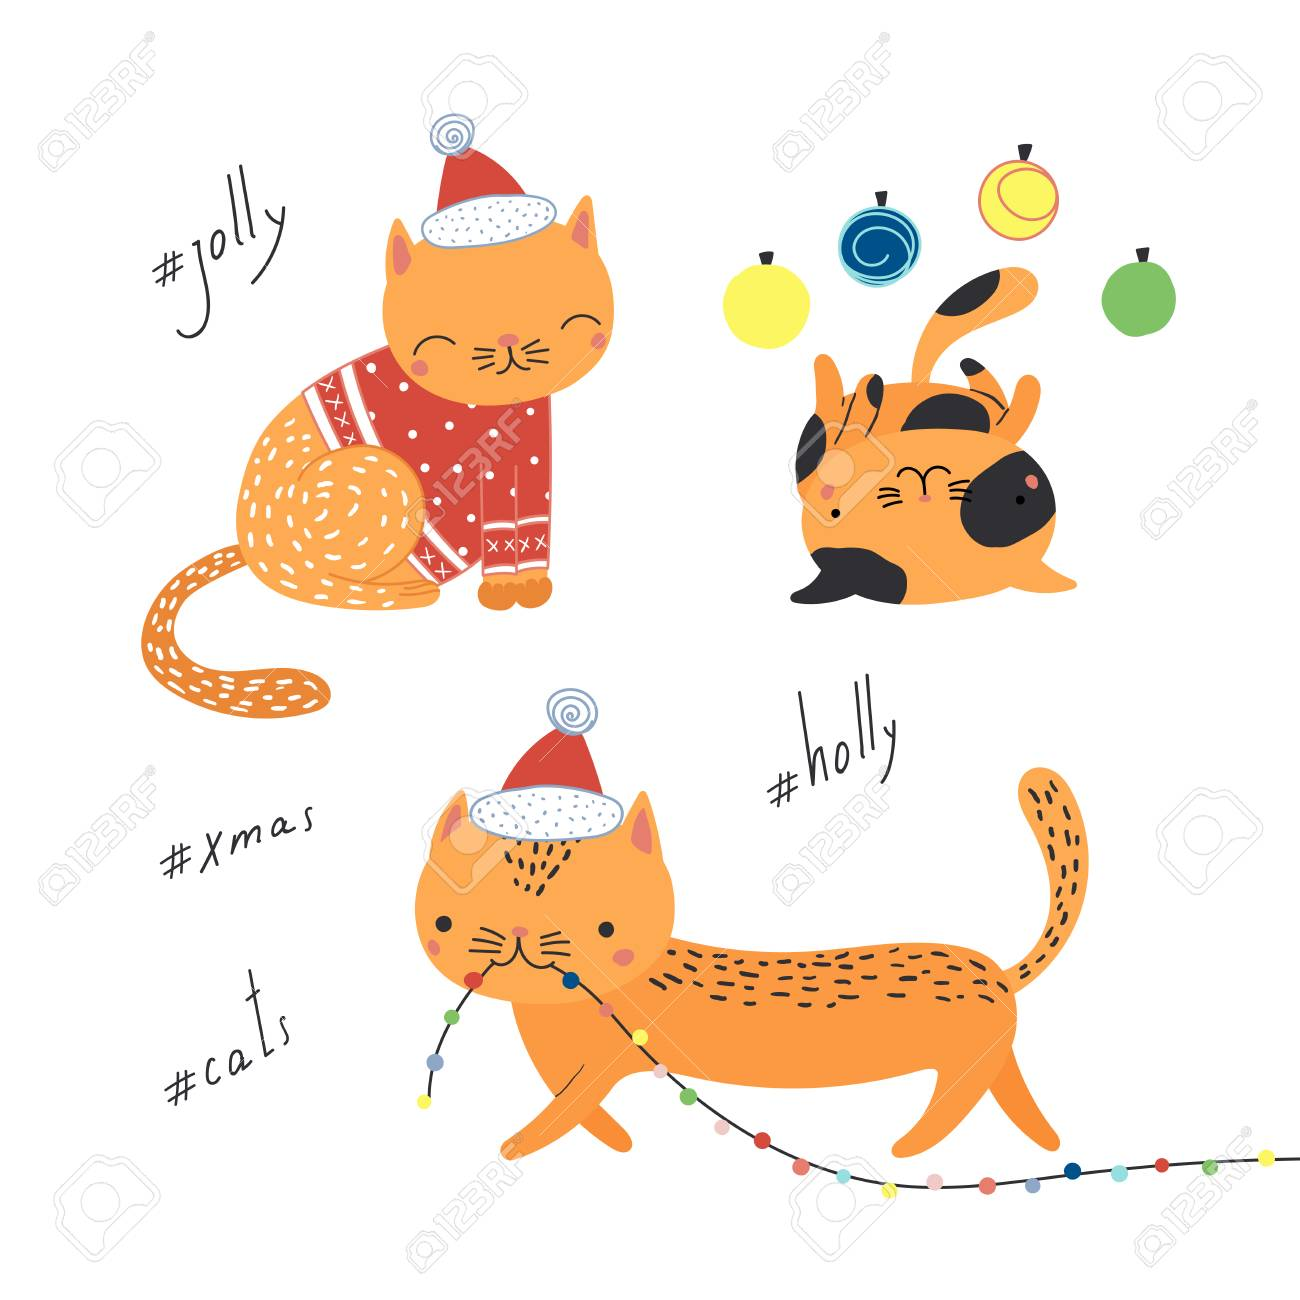 Hand Drawn Greeting Card With Cute Funny Cartoon Cats In Hats